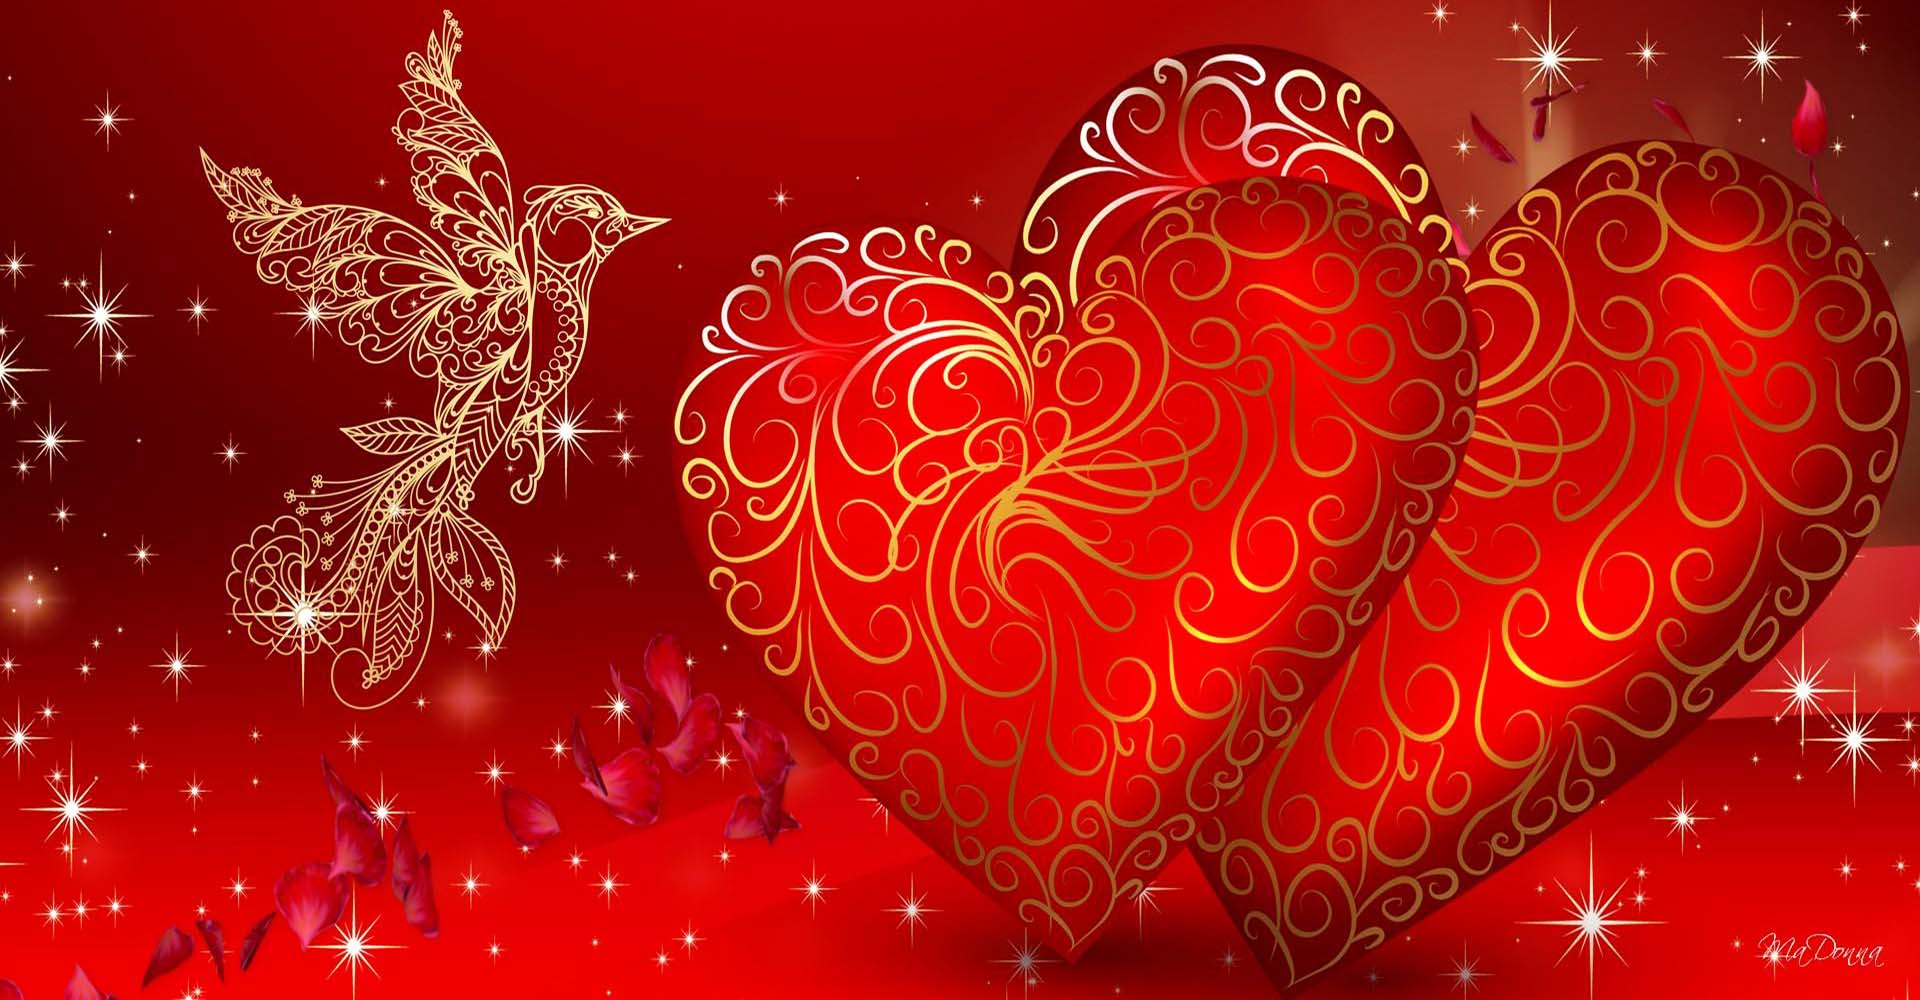 Love Poem Hd Wallpaper : Love Heart Wallpapers 2016 - Wallpaper cave